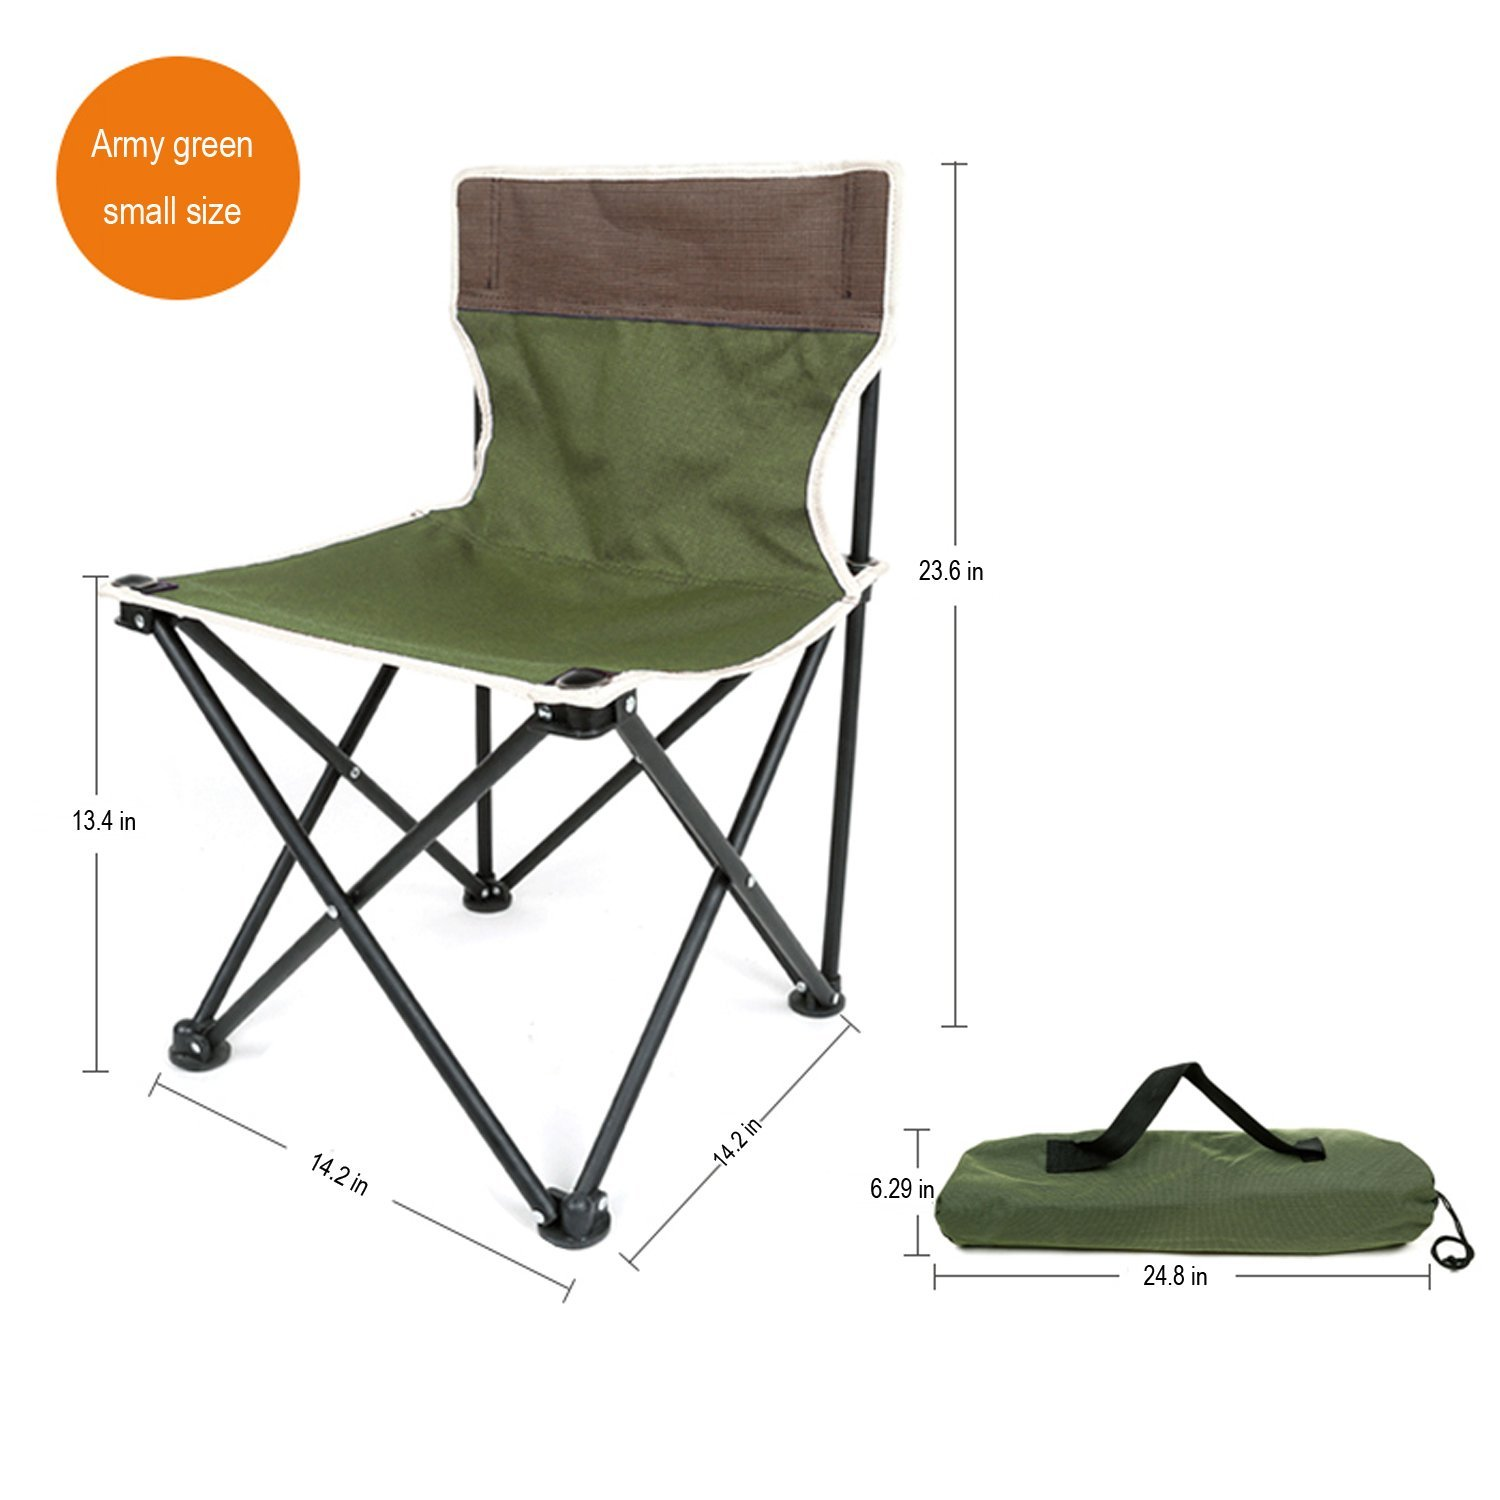 Enjoyable Cheap Camping Chairs For Kids Find Camping Chairs For Kids Creativecarmelina Interior Chair Design Creativecarmelinacom